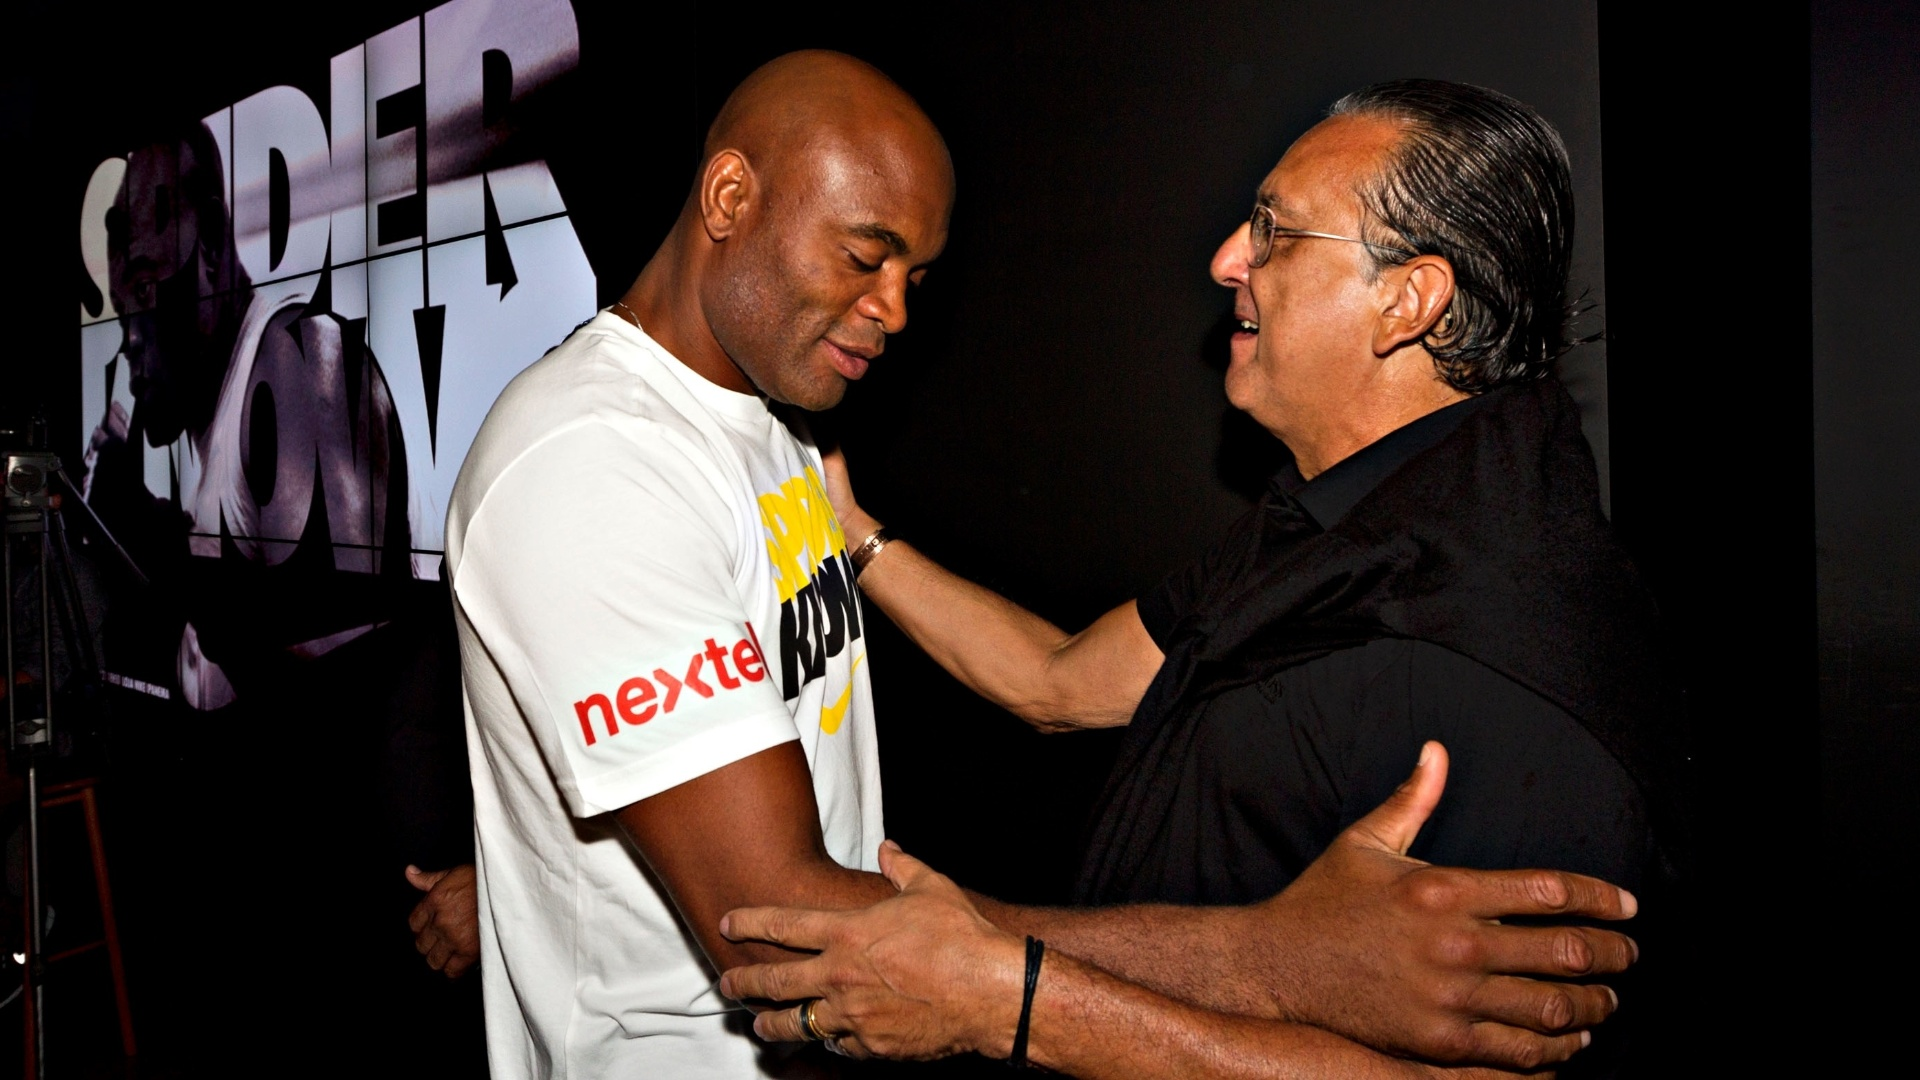 Anderson Silva cumprimenta o narrador Galvo Bueno, da TV Globo, em evento da Nike no Rio